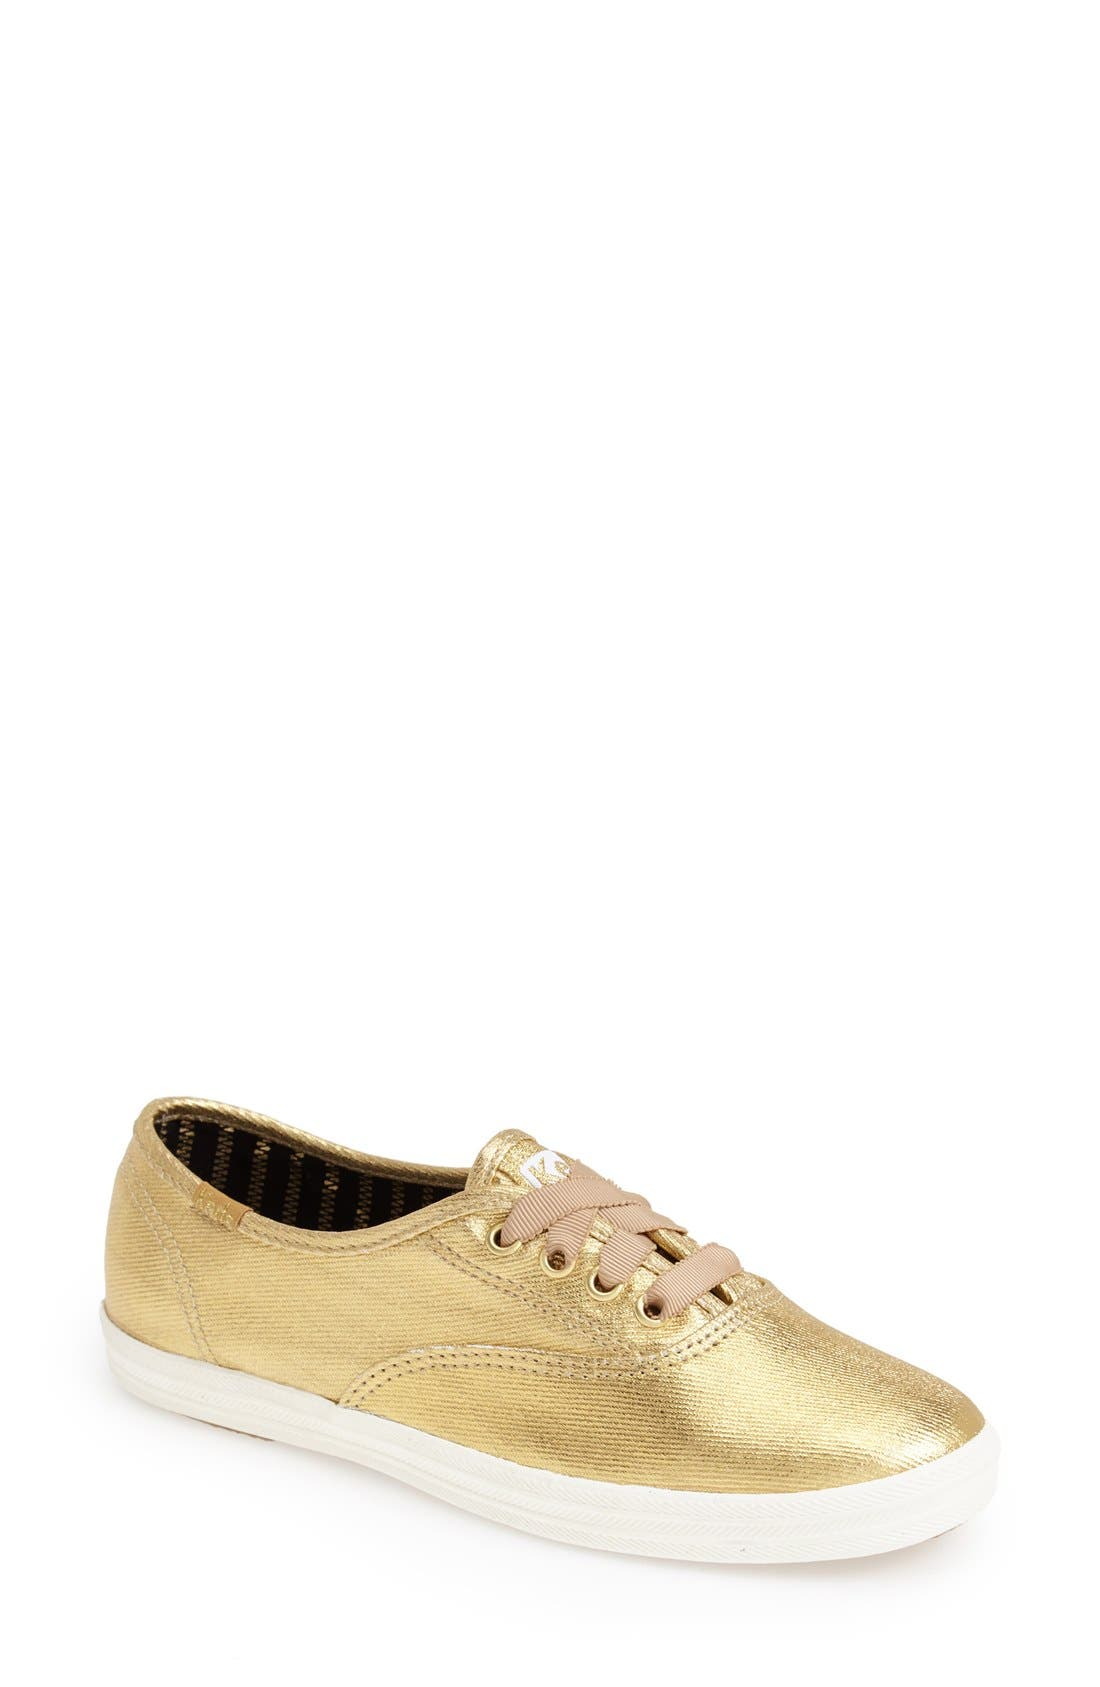 Alternate Image 1 Selected - Keds® 'Champion - Metallic' Sneaker (Women)